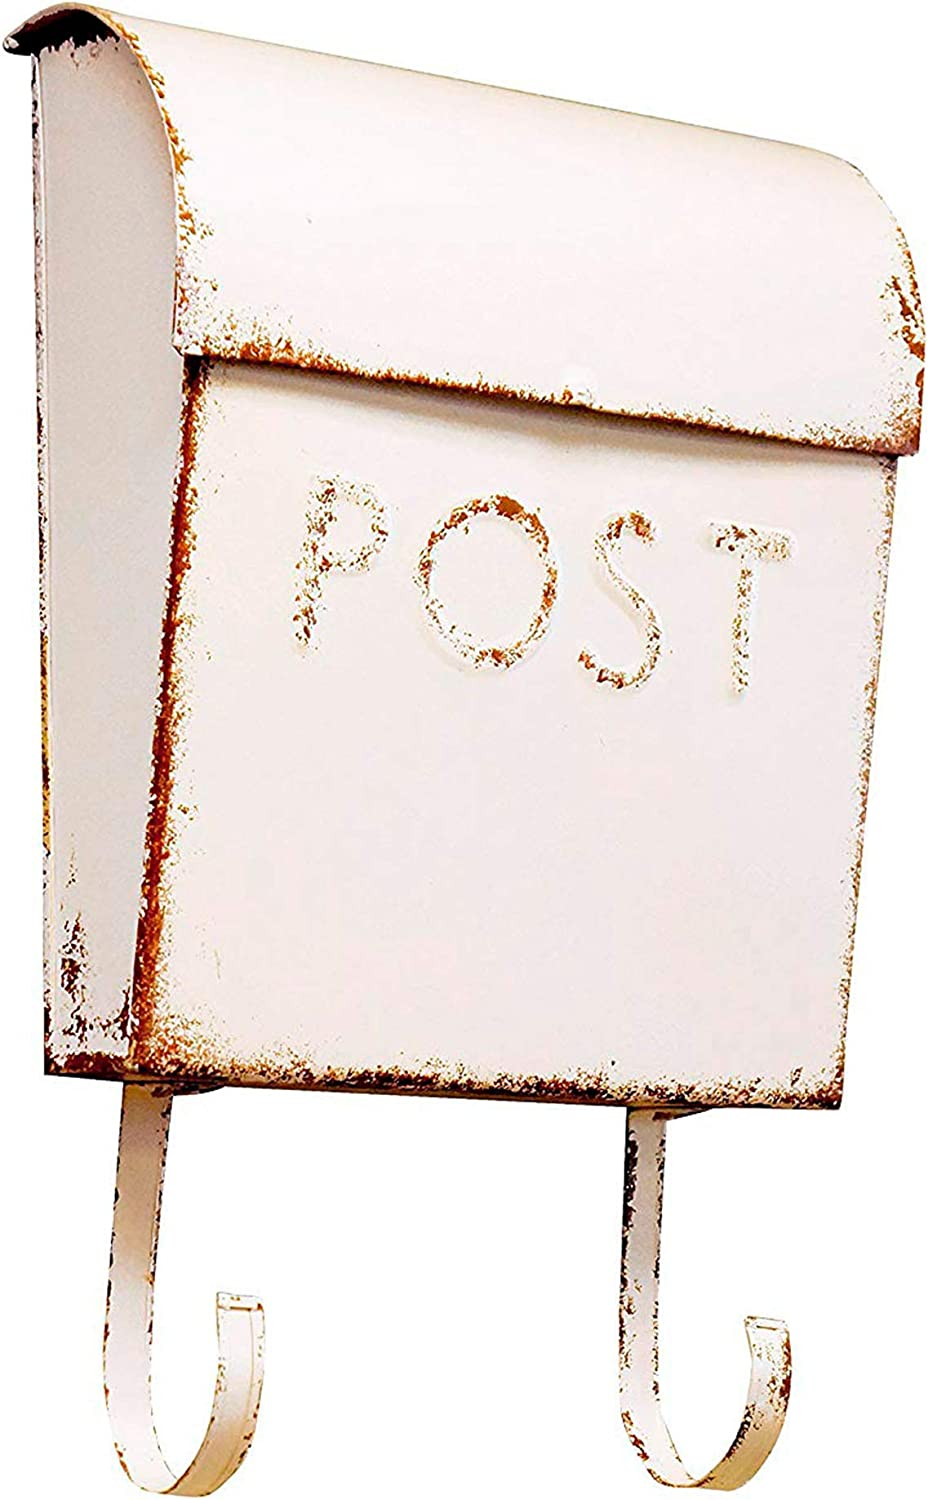 NACH TH-15658 Wall Mounted Euro Aged Rustic Mailbox with Newspaper Holder, Rustic Cream, 13 x 10.8 x 4.1 Inches